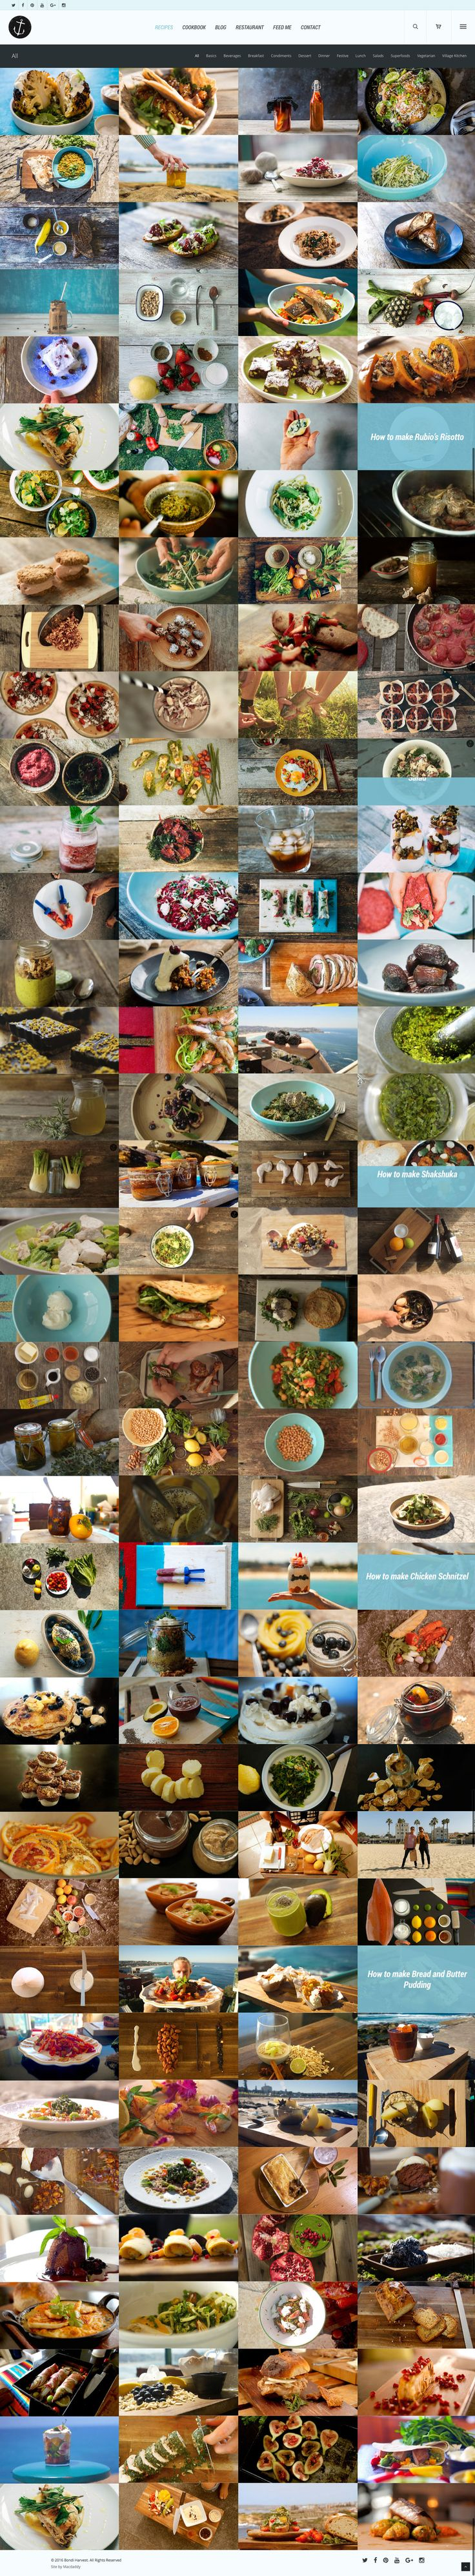 Bondi Harvest website by KORE (http://kore.digital/). The home of food porn. Recipe page